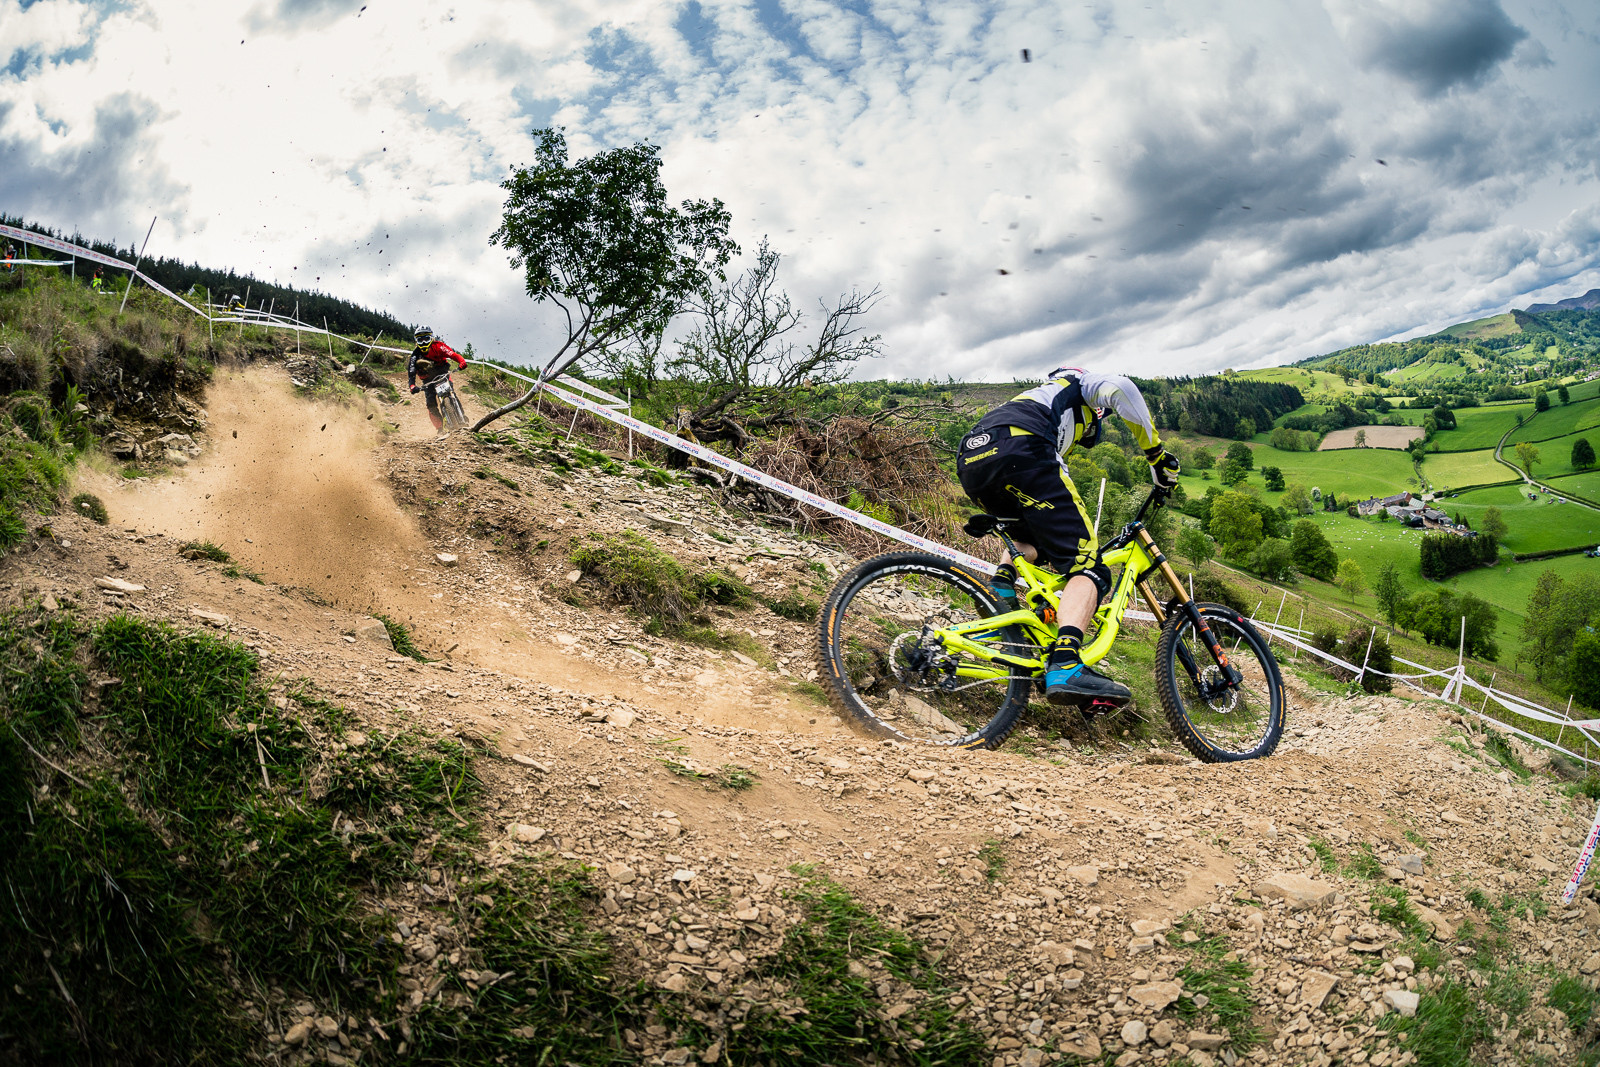 Gee Atherton, British Downhill Series Langollen - RACE REPORT - British Downhill Series Llangollen - Mountain Biking Pictures - Vital MTB